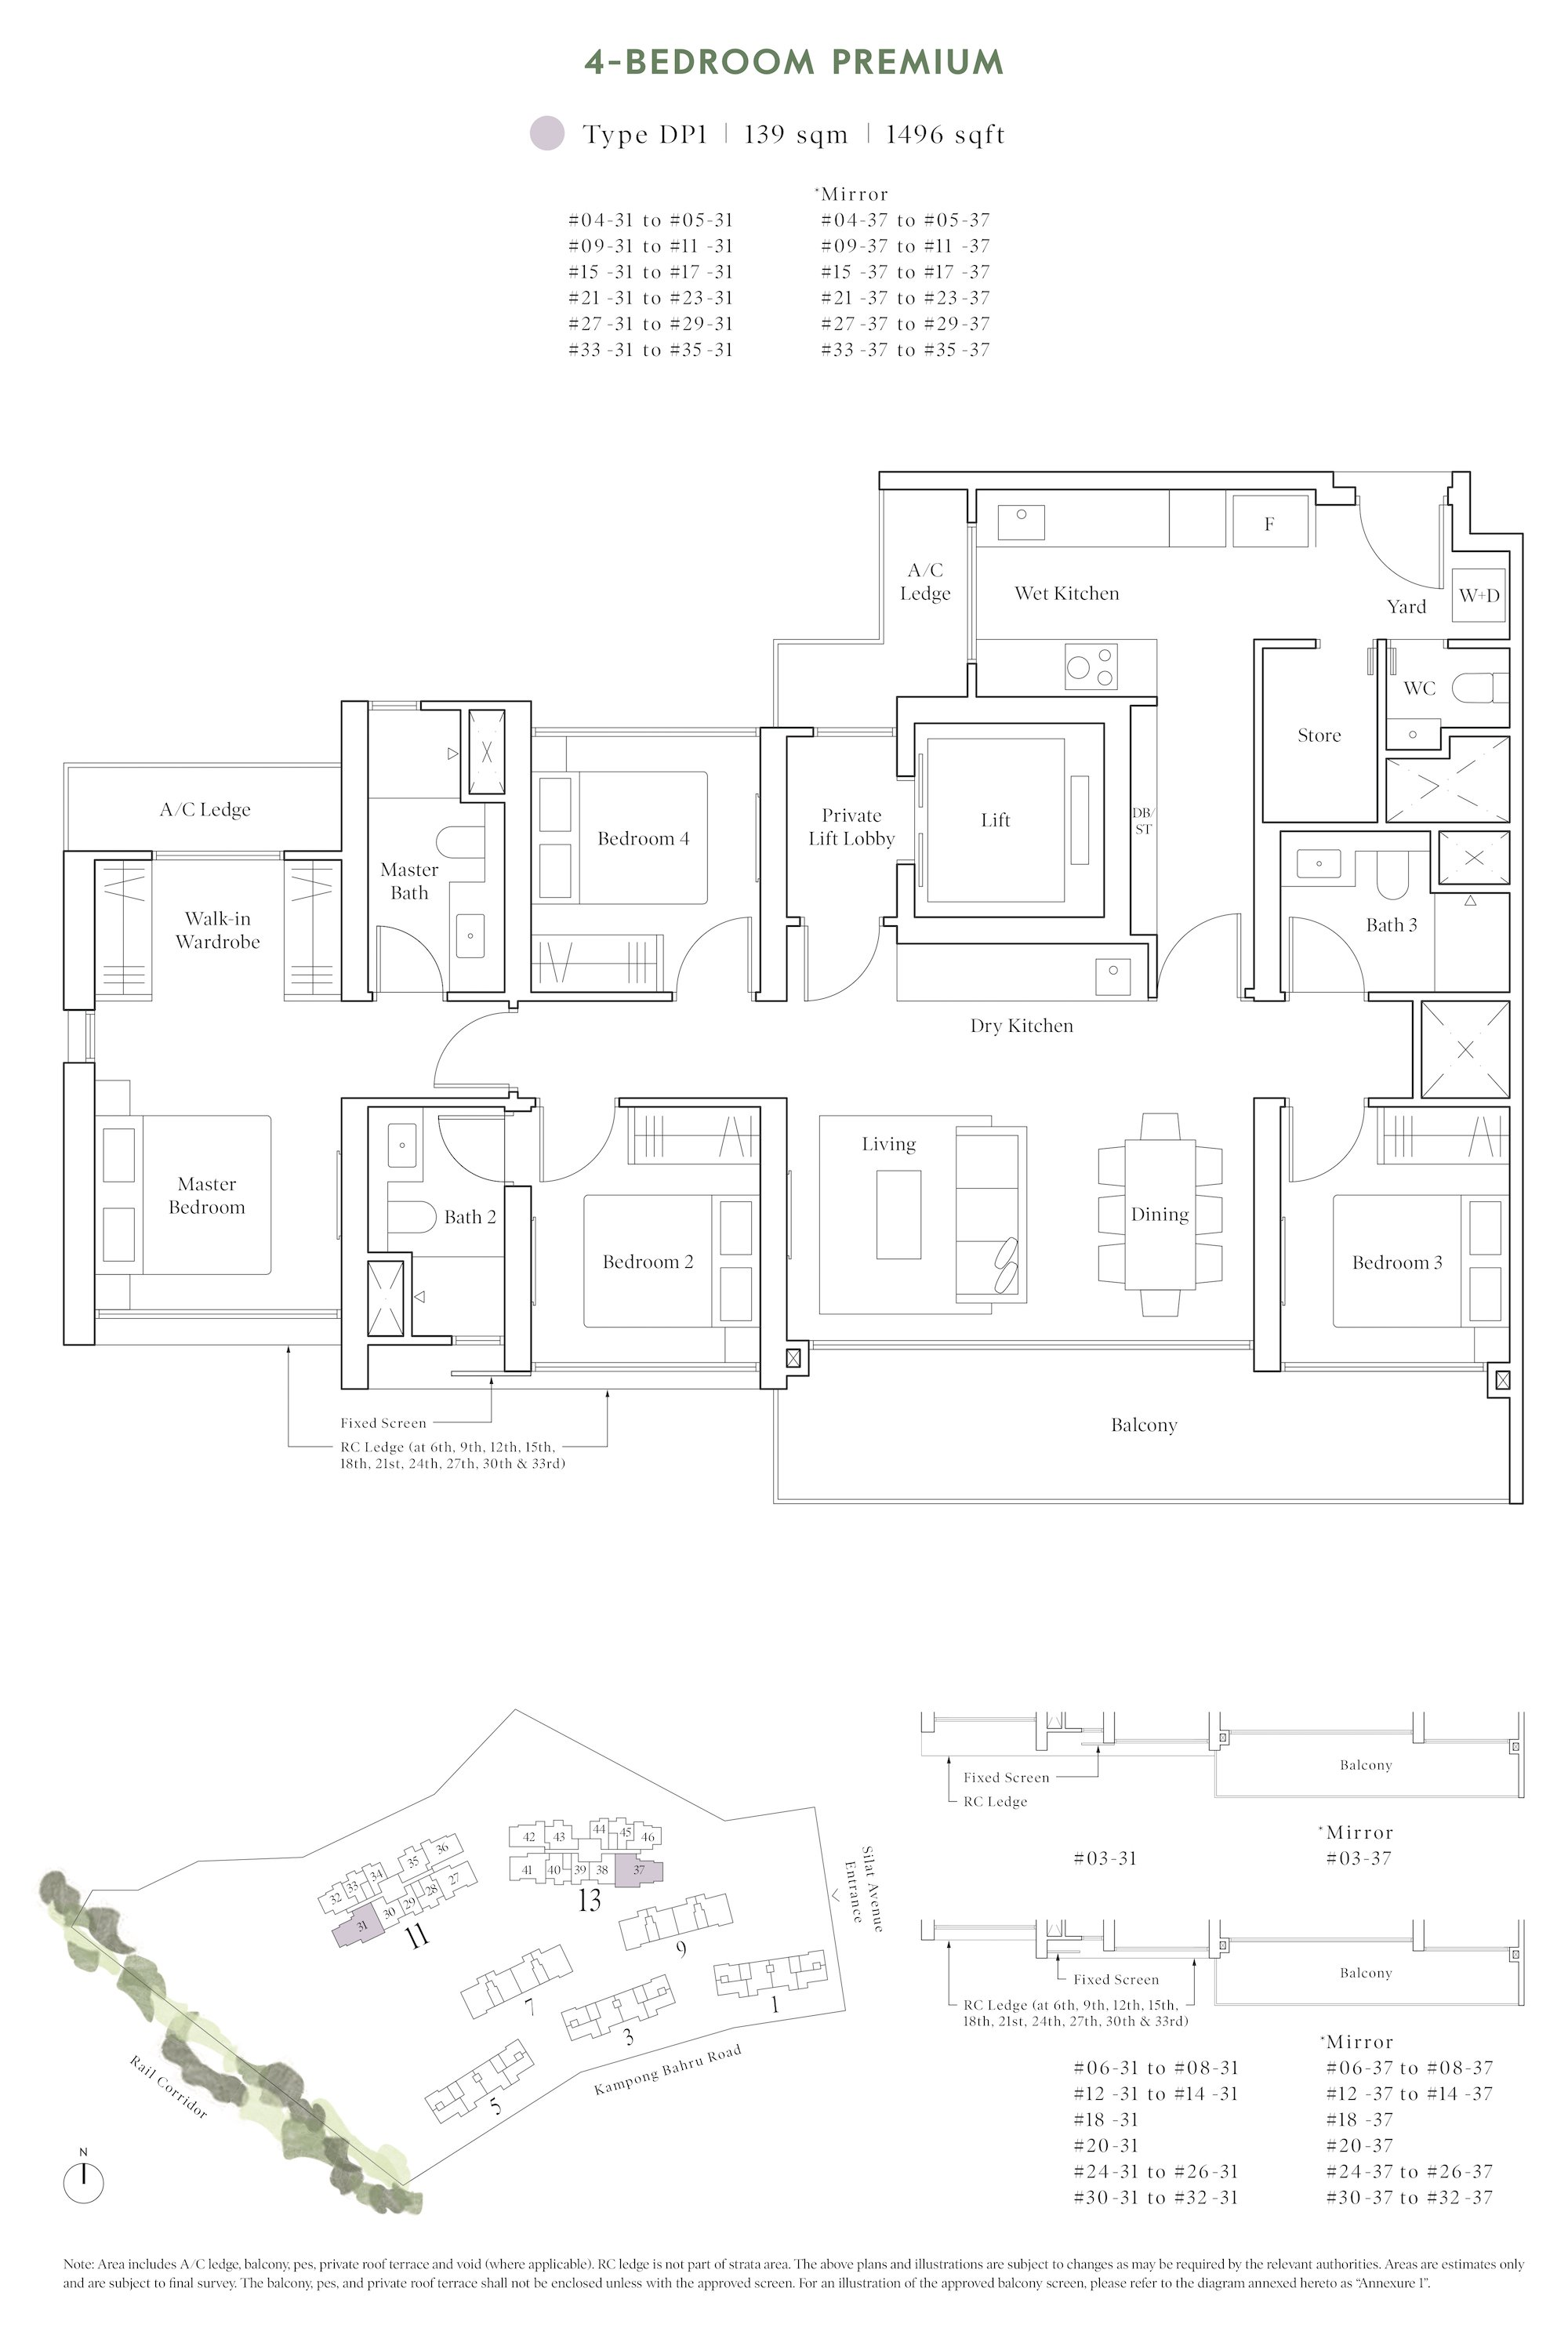 Avenue South Residence 南峰雅苑 horizon floor plan 4-bedroom premium dp1